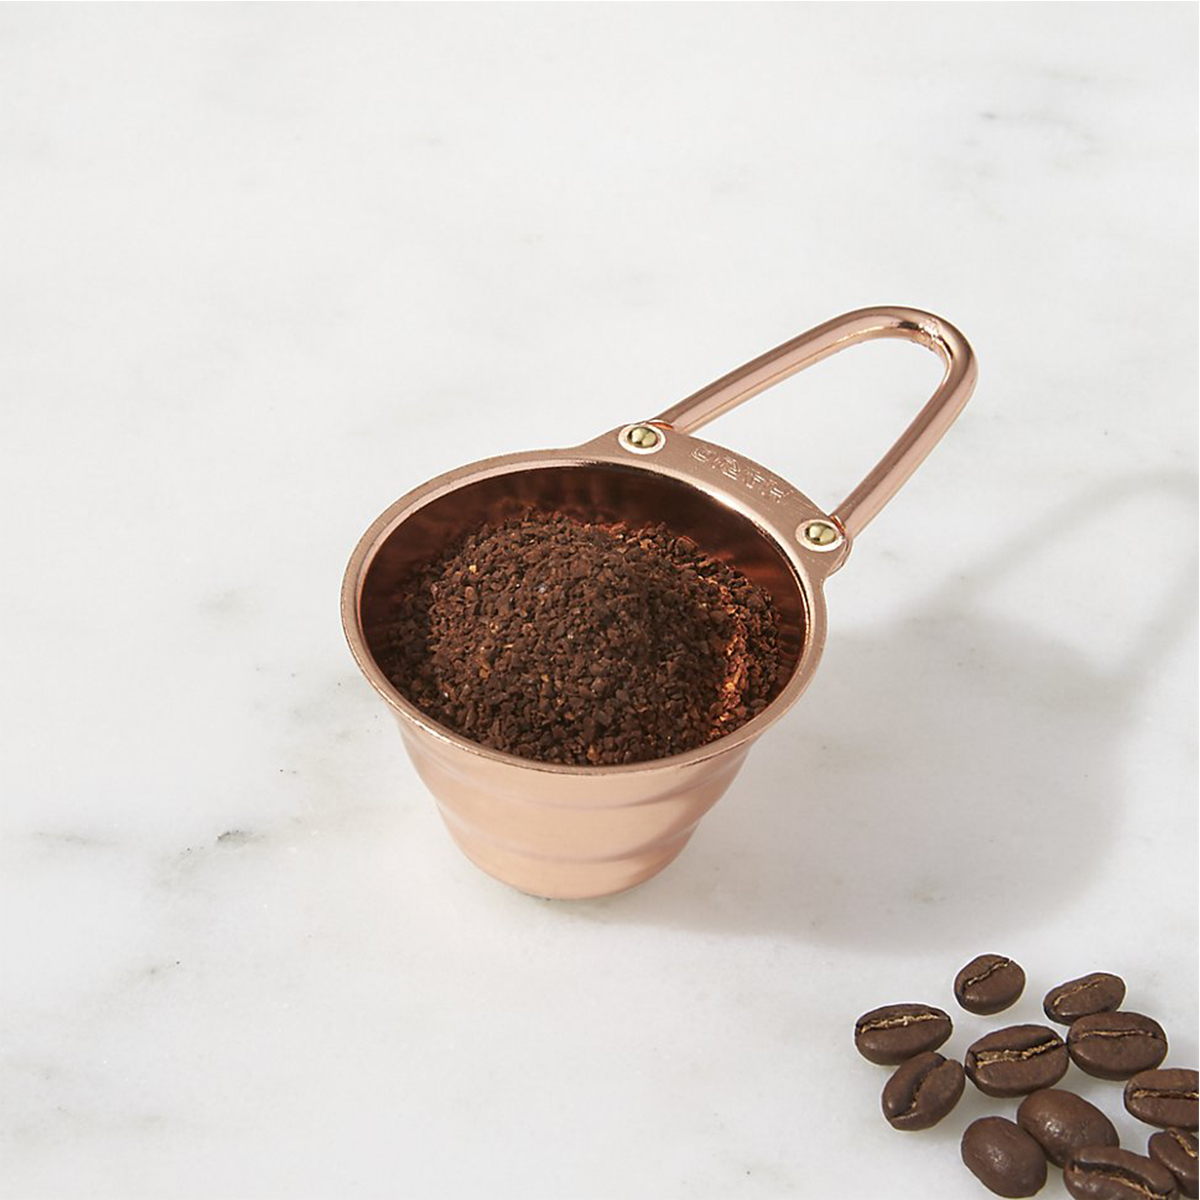 Small copper scoop for coffee grounds photo